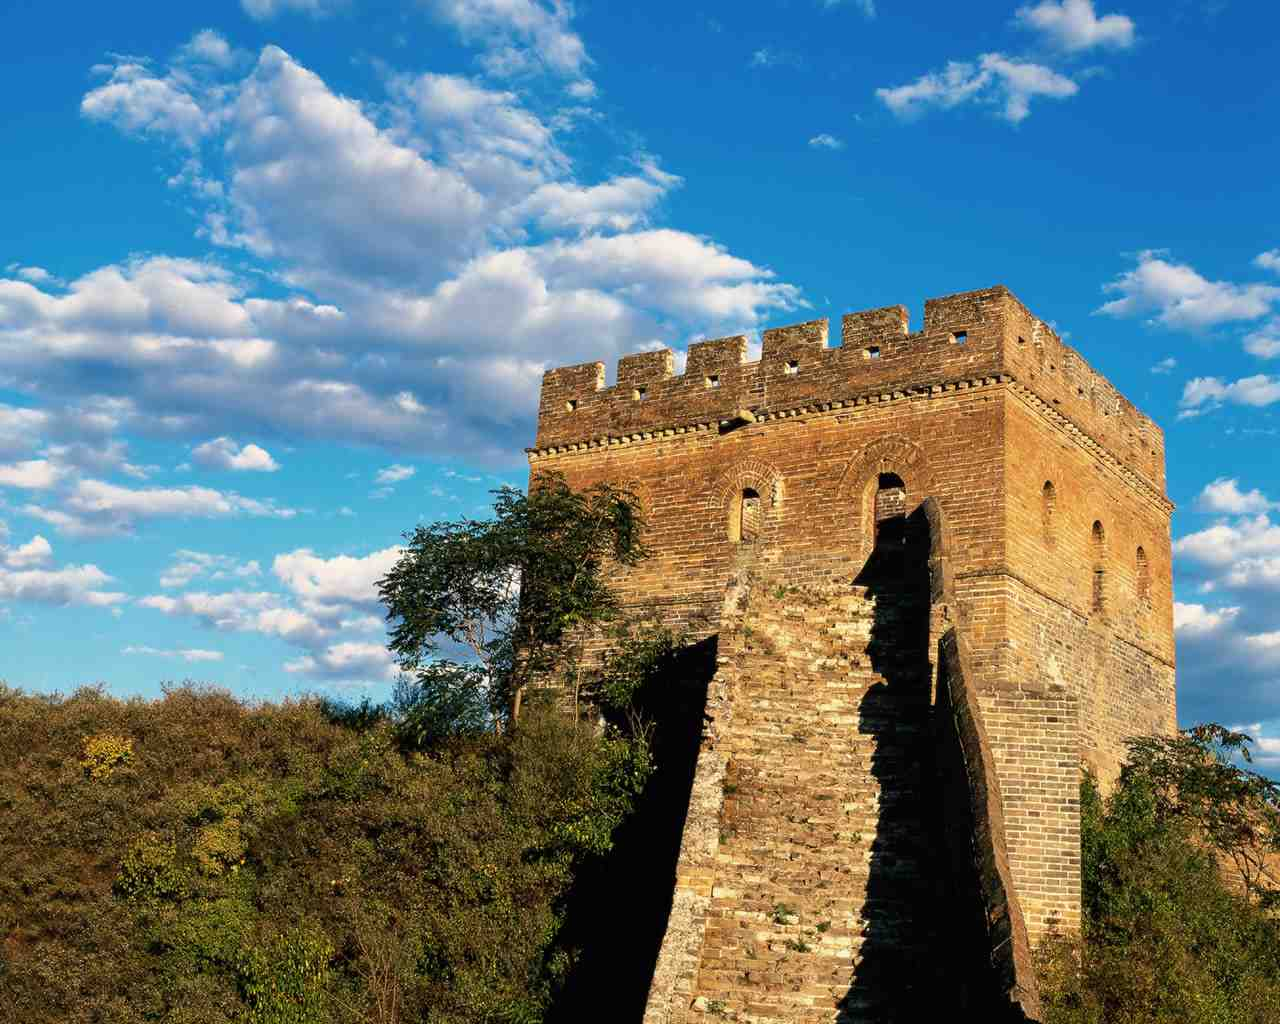 The Great Wall Guard Tower